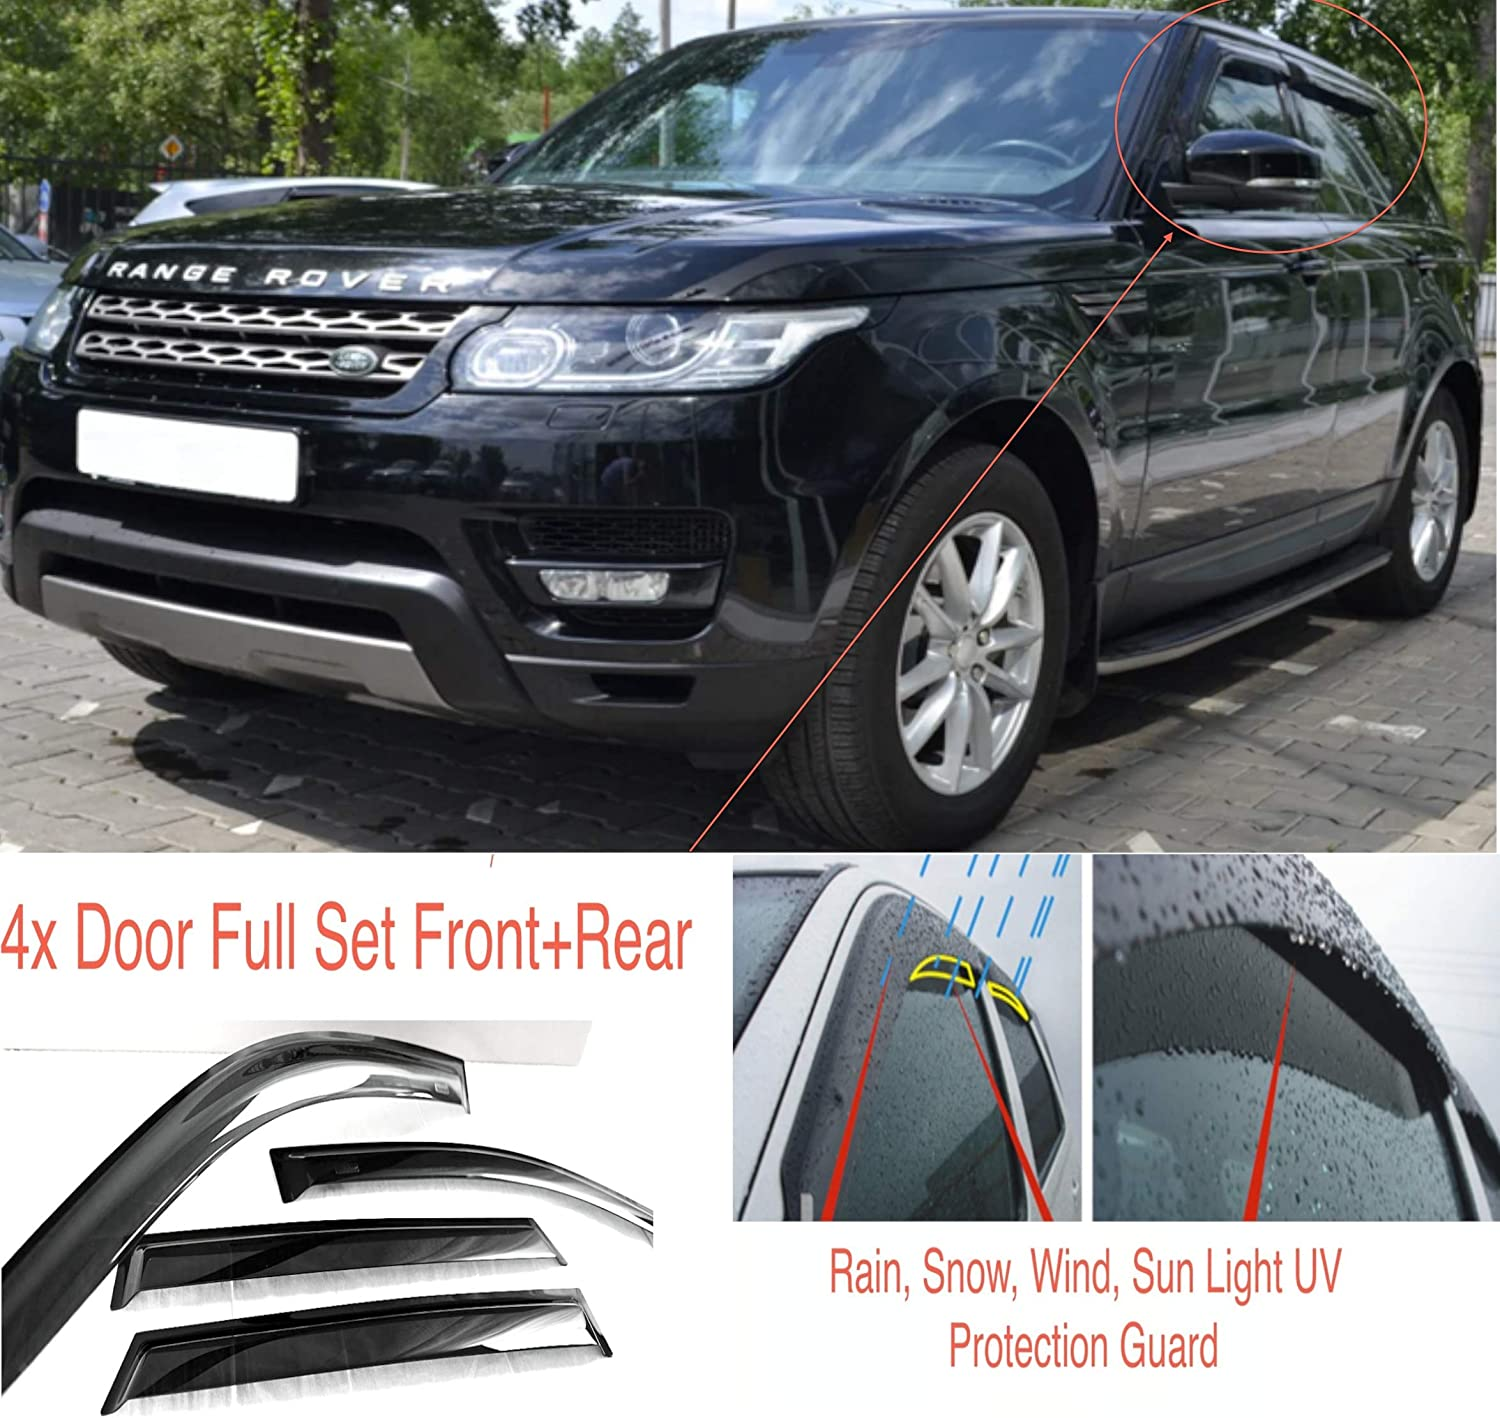 Ac Wow 4 Wind Deflectors Compatible With Range Rover Sport L494 2013 2014 2015 2016 2017 2018 2019 2020 And More Acrylic Glass Weather Protection Visors Auto